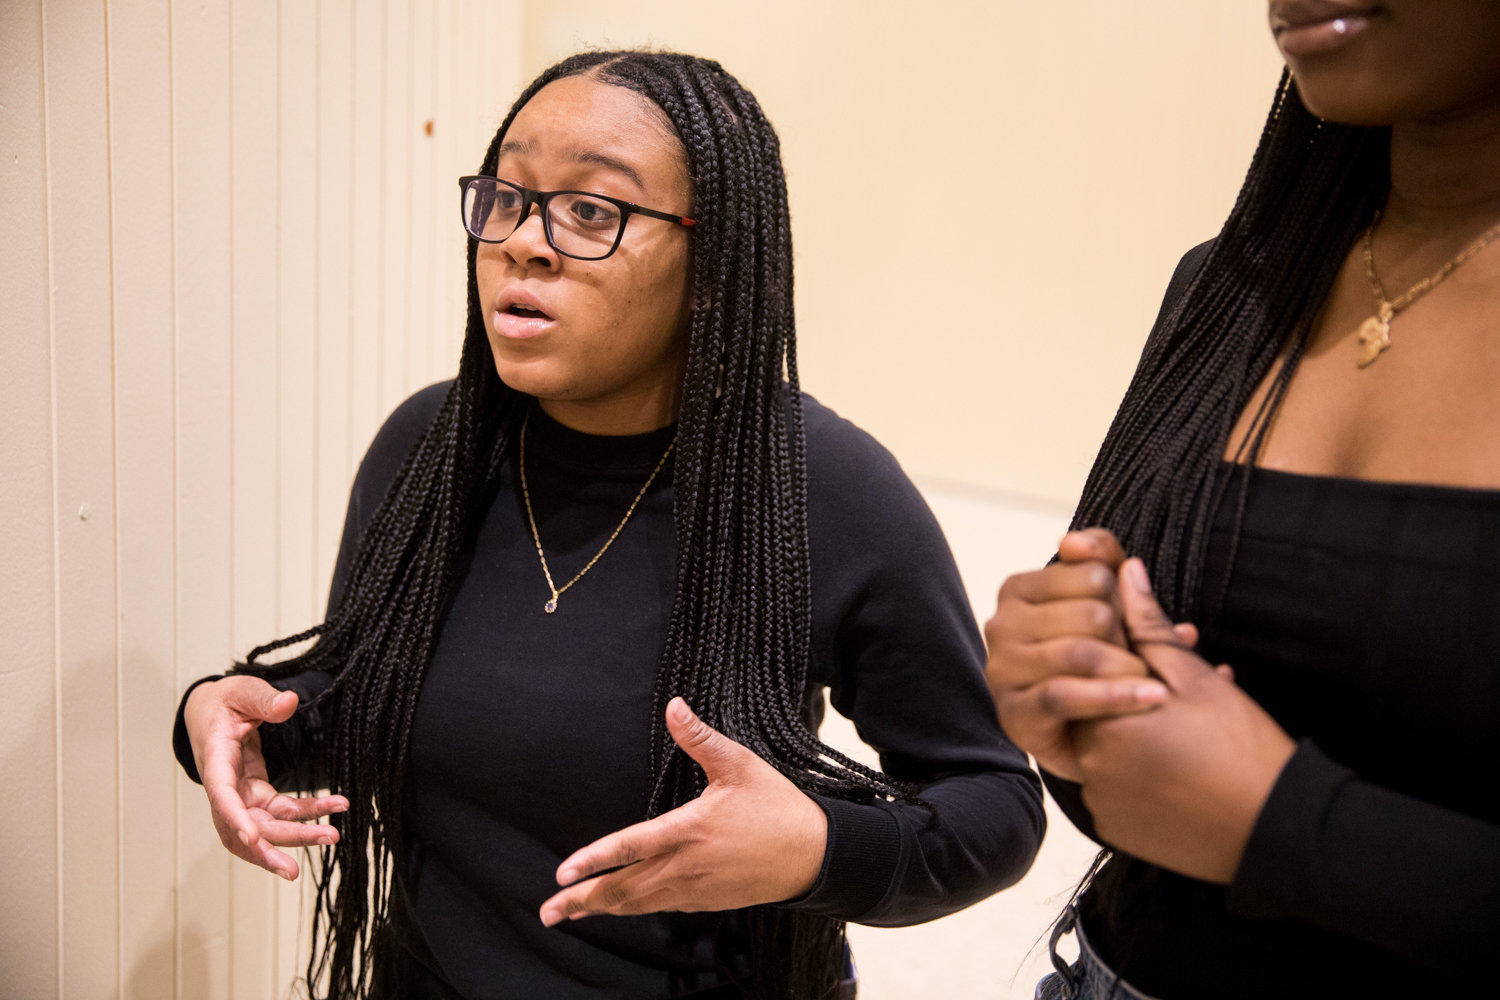 Tamara Wood, a senior at Marble Hill School for International Studies, was inspired by last year's Black History Show to help found the Black Student Union.